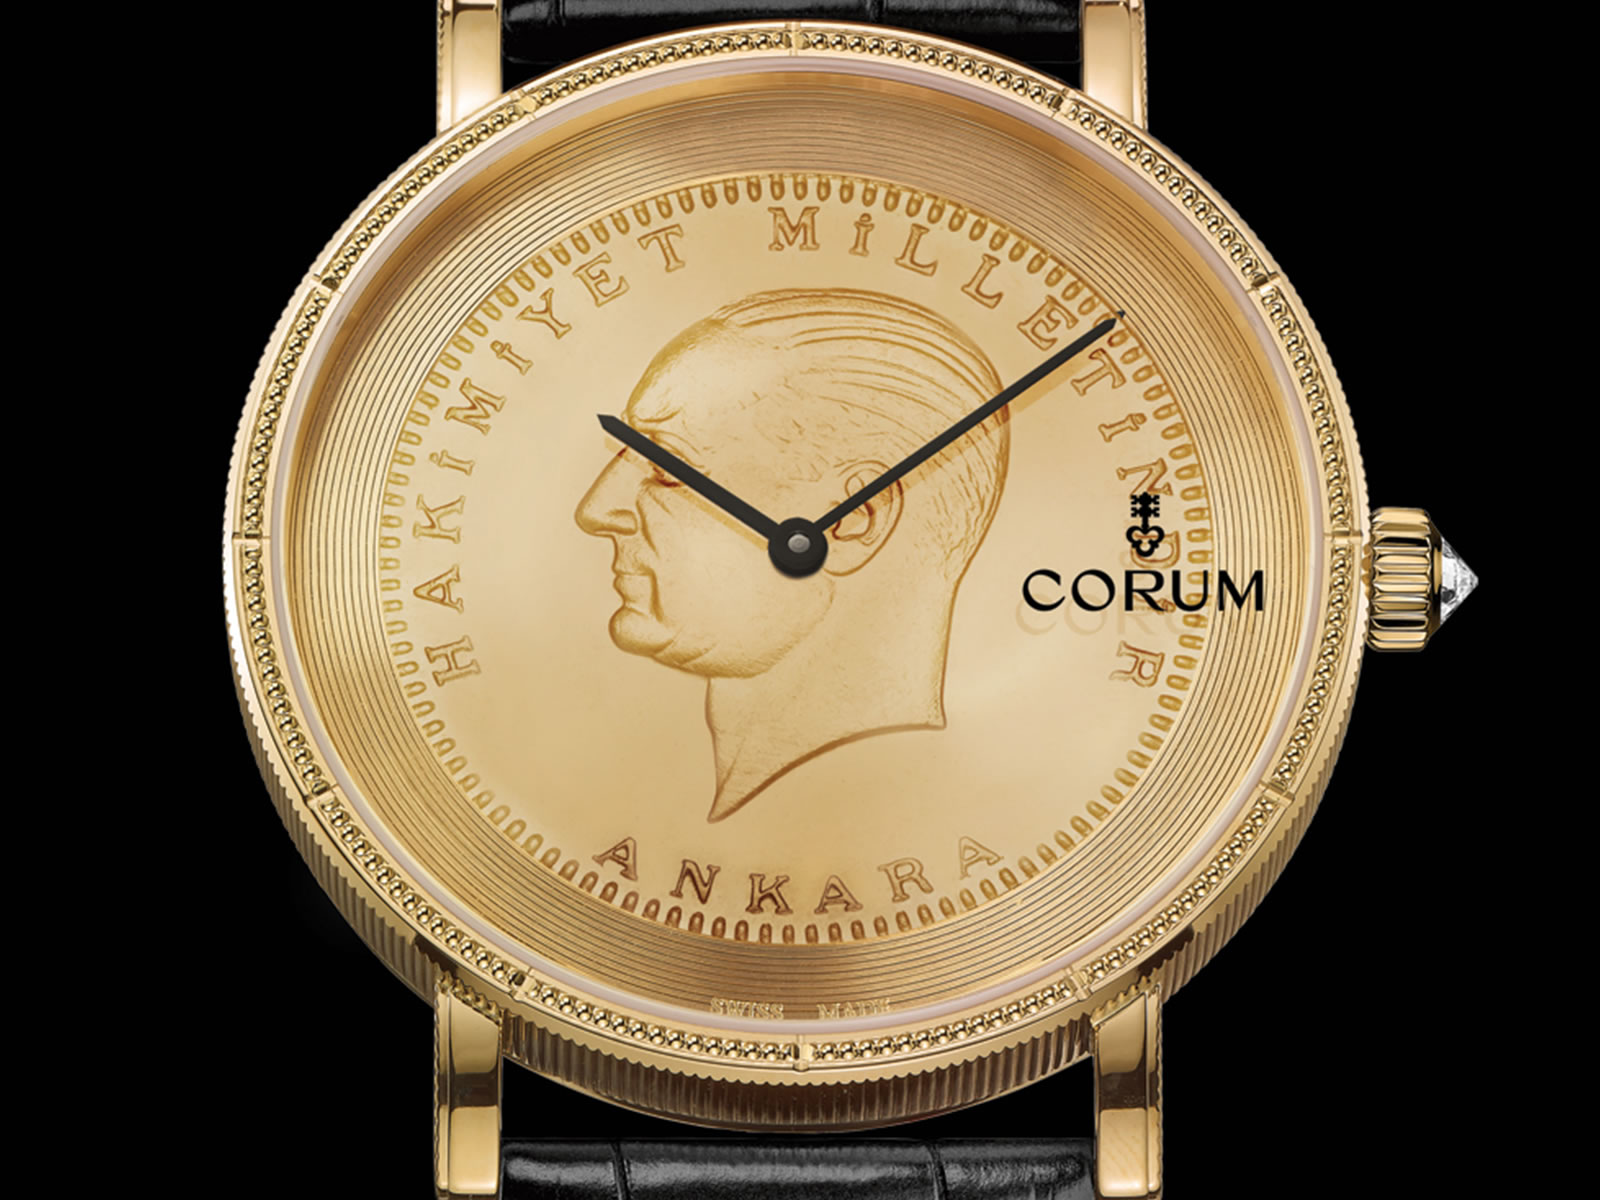 corum-heritage-artisans-coin-watch-ata-limited-edition-3-.jpg